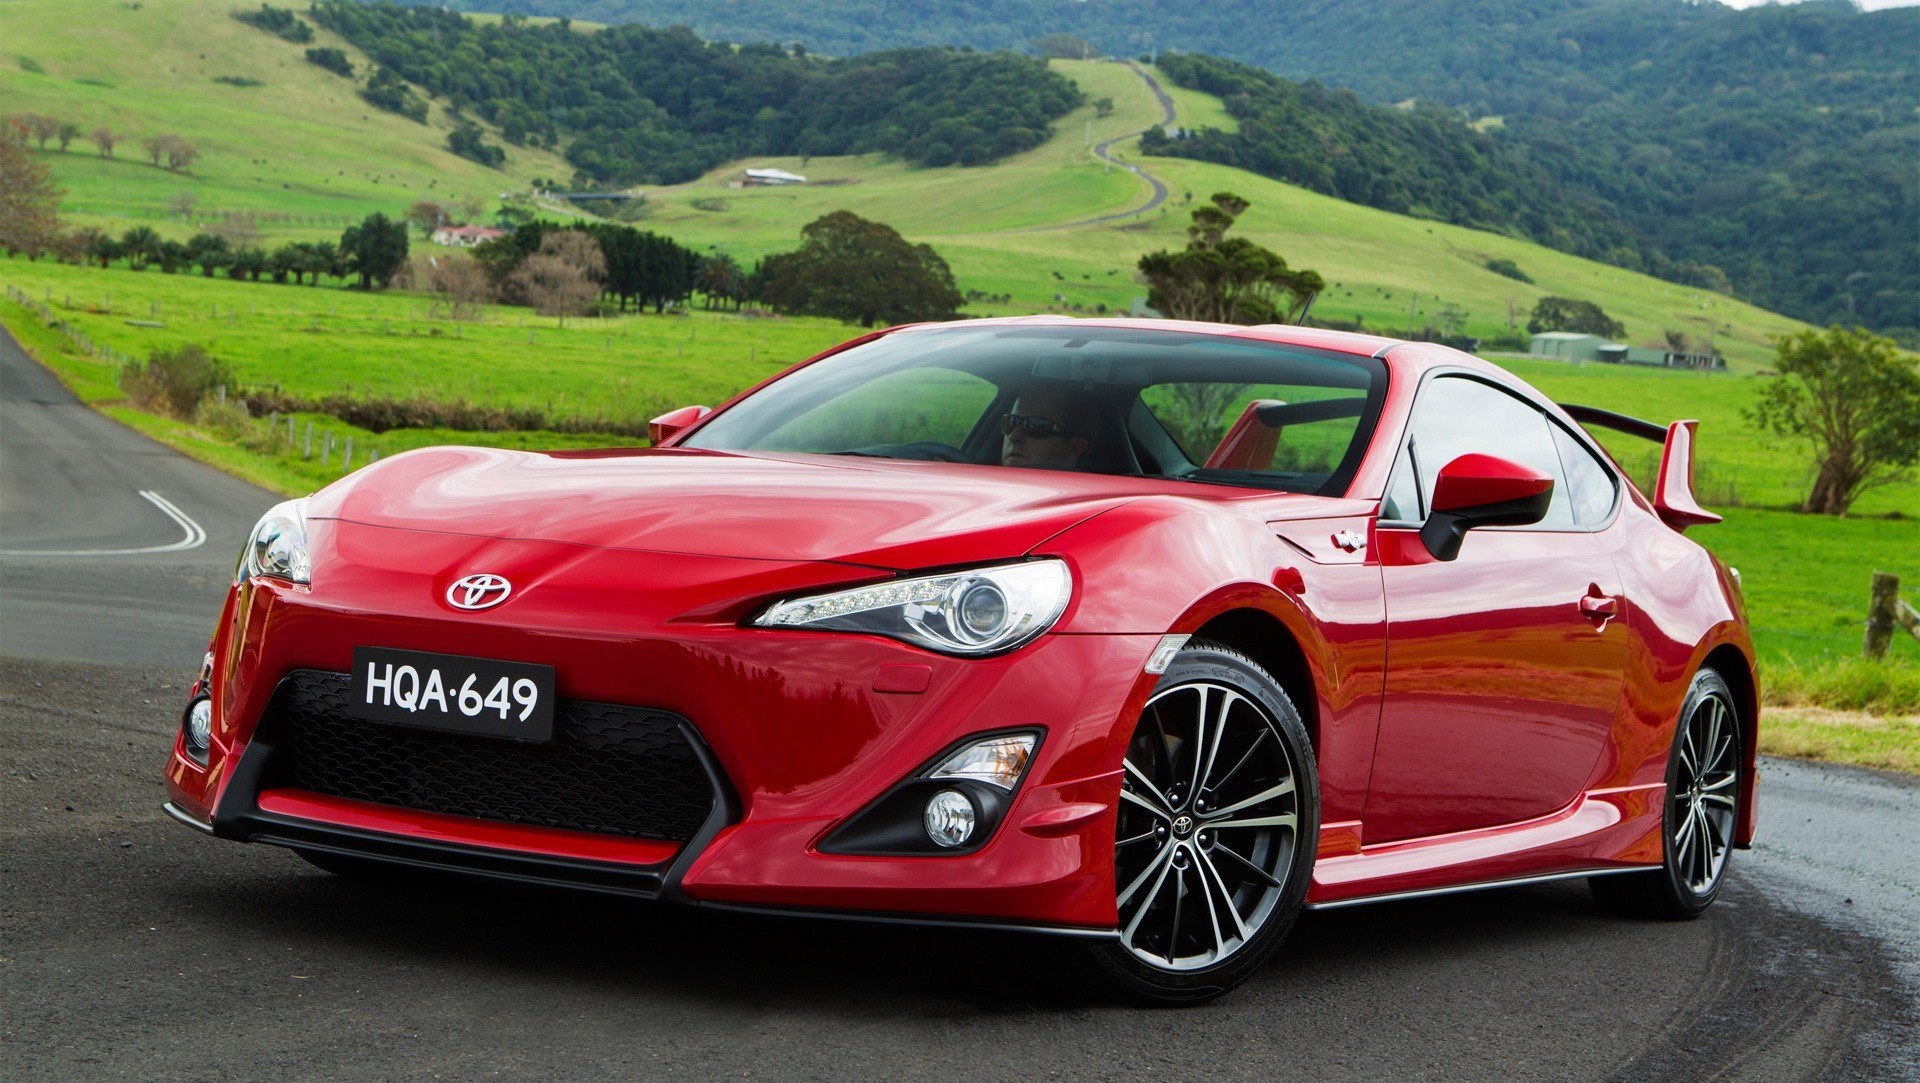 toyota gt 86 wallpapers images photos pictures backgrounds. Black Bedroom Furniture Sets. Home Design Ideas